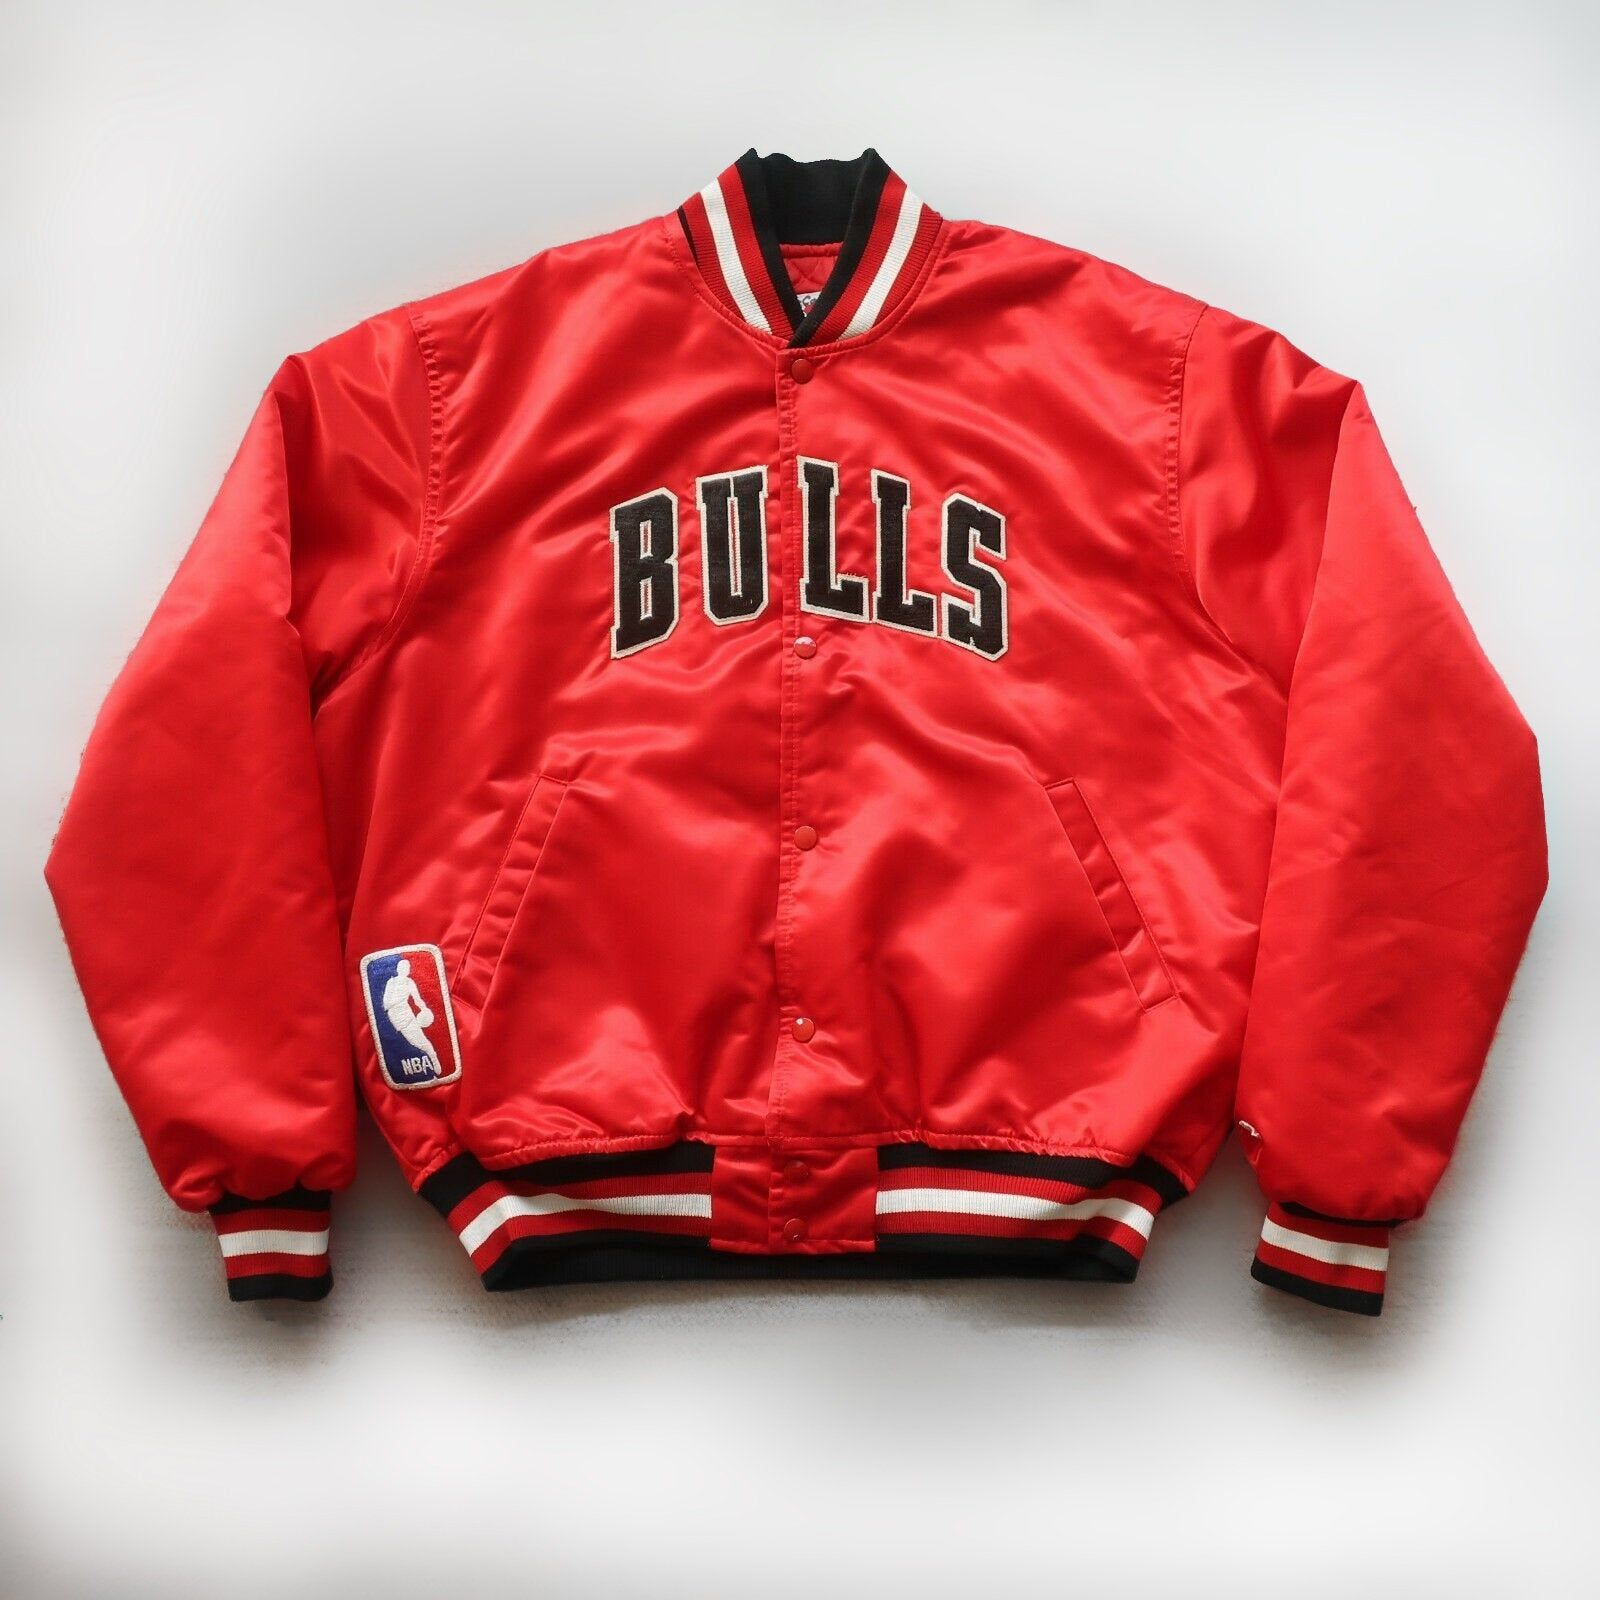 Vintage 90s Chicago Bulls Satin Jacket By Starter Red White Etsy In 2020 Satin Jackets Jackets Men S Coats And Jackets